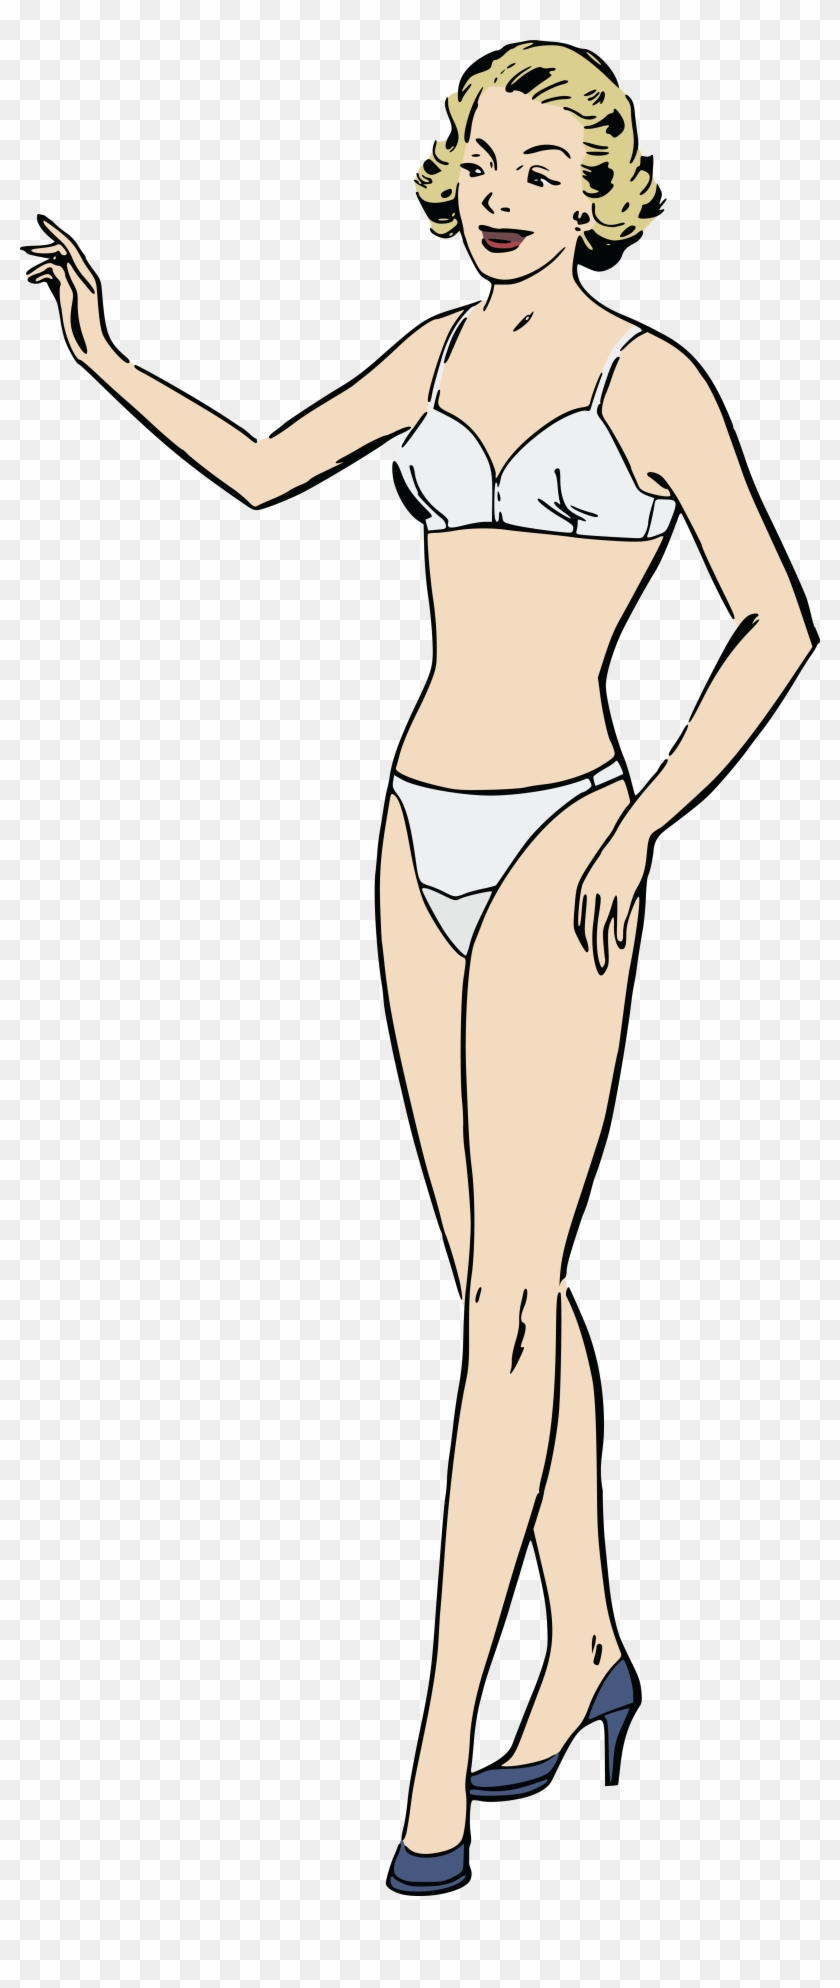 Clipart female models png royalty free library Free Clipart Of A Retro Blond Female Model In Undergarments - Woman ... png royalty free library